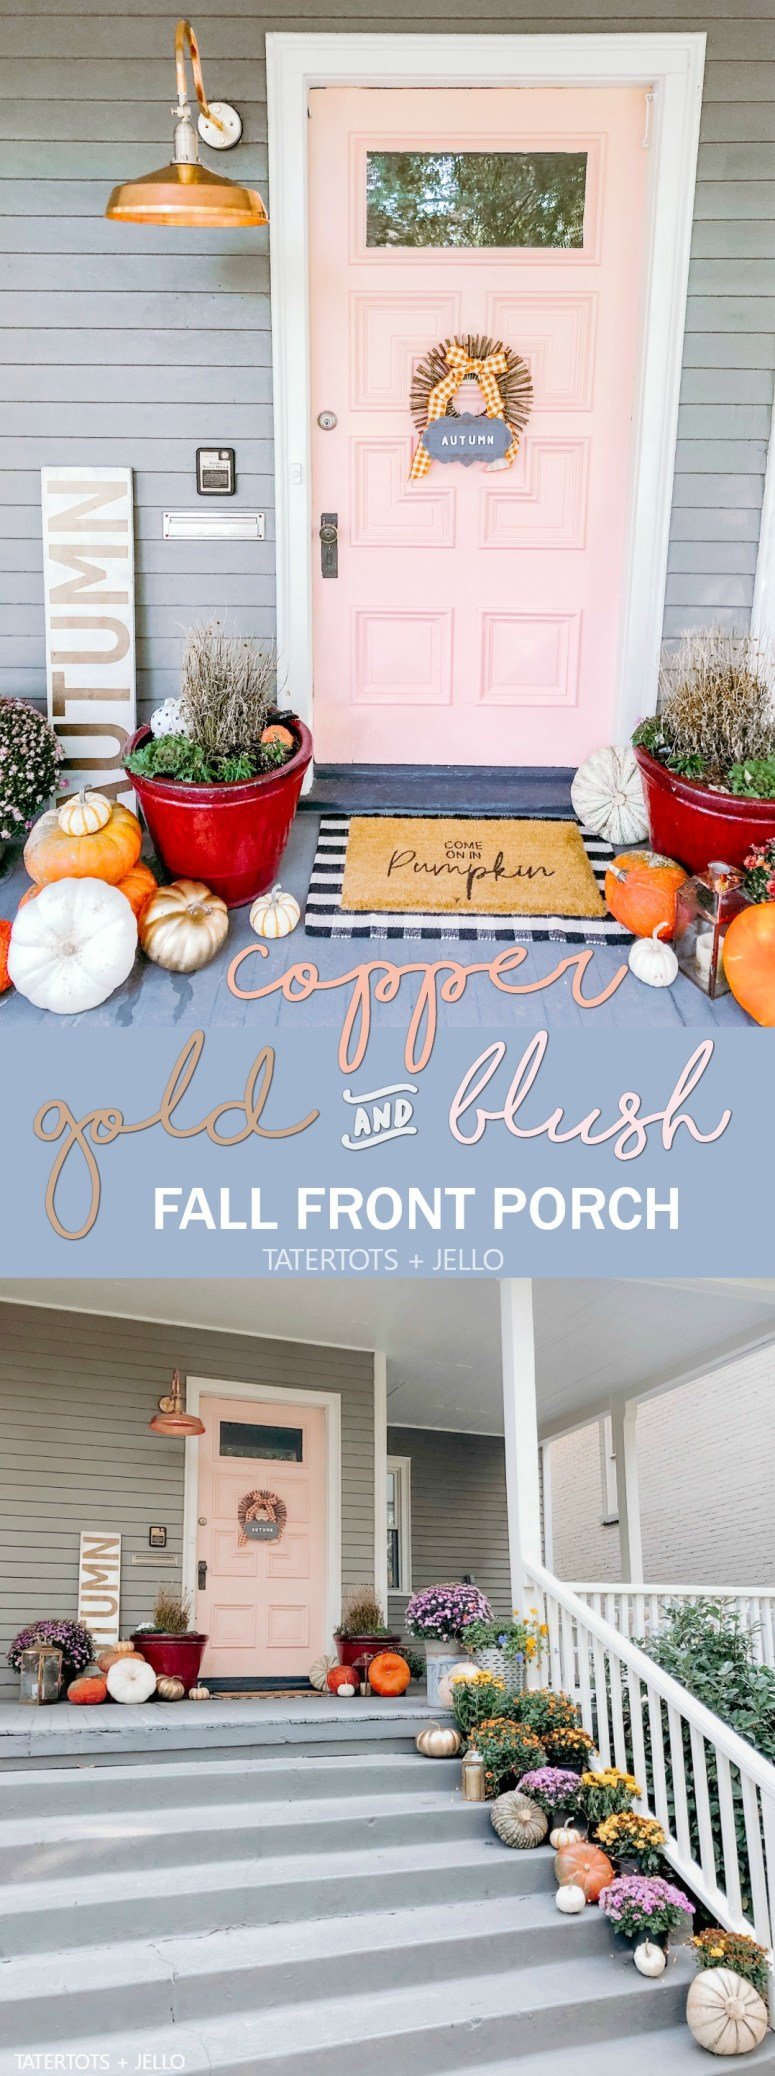 Copper, Gold and Blush Fall Porch Decorating Ideas! Celebrate Fall with a metallic pop of copper, gold and Blush. Easy ways to create a welcoming Autumn porch.